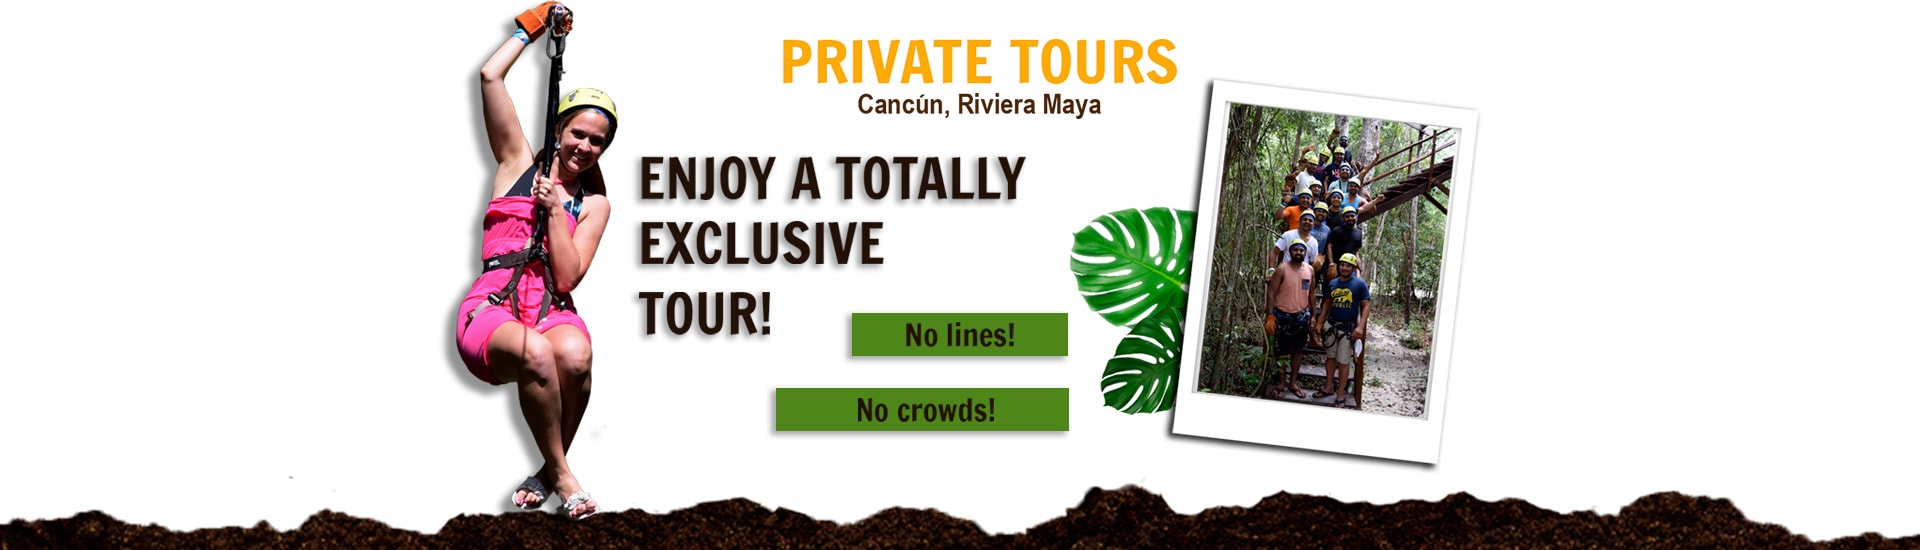 private-tours-home-banner